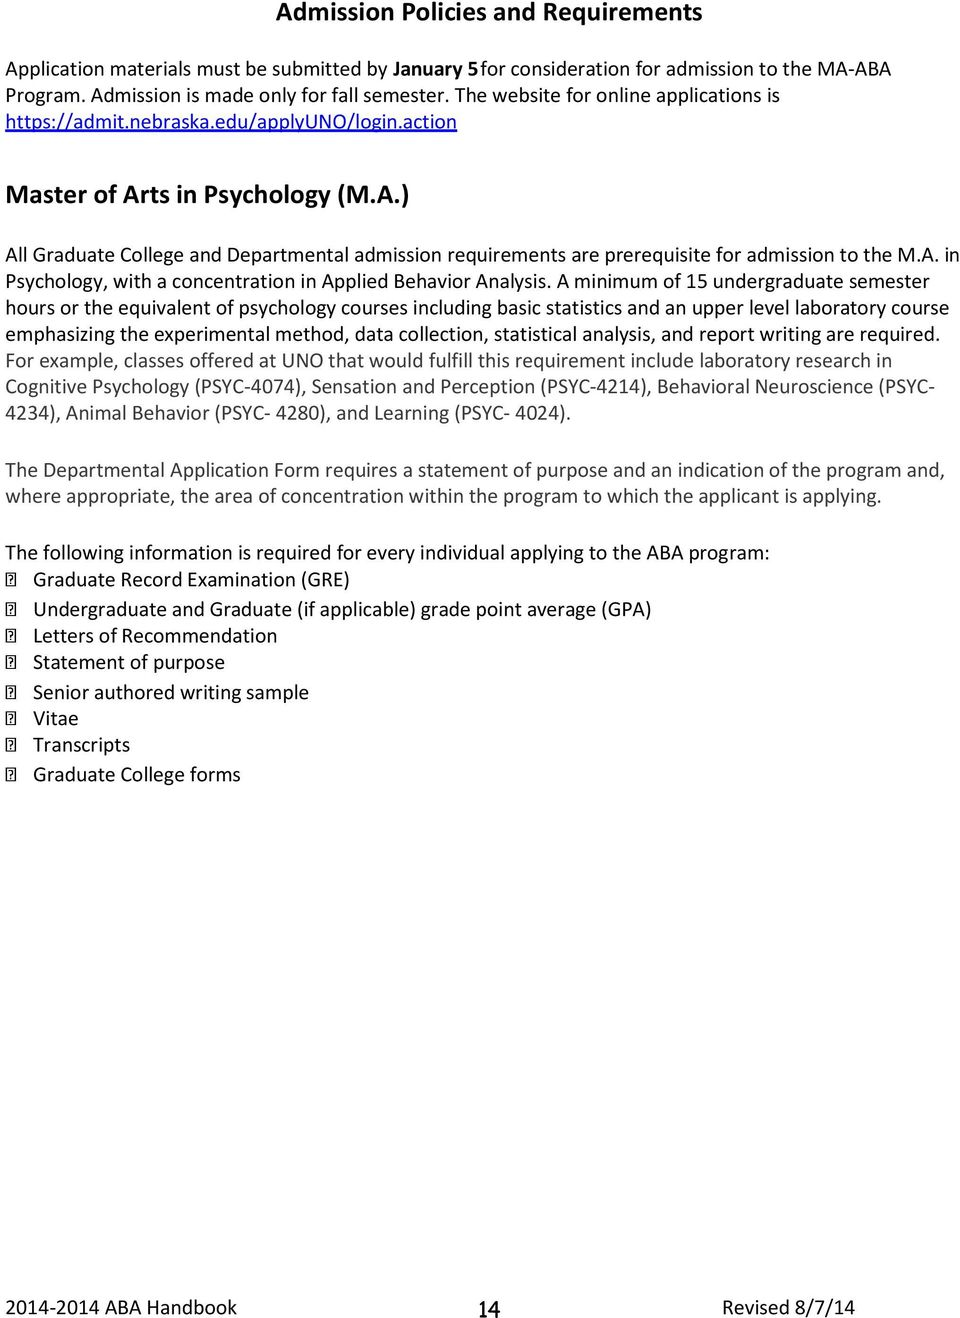 ts in Psychology (M.A.) All Graduate College and Departmental admission requirements are prerequisite for admission to the M.A. in Psychology, with a concentration in Applied Behavior Analysis.